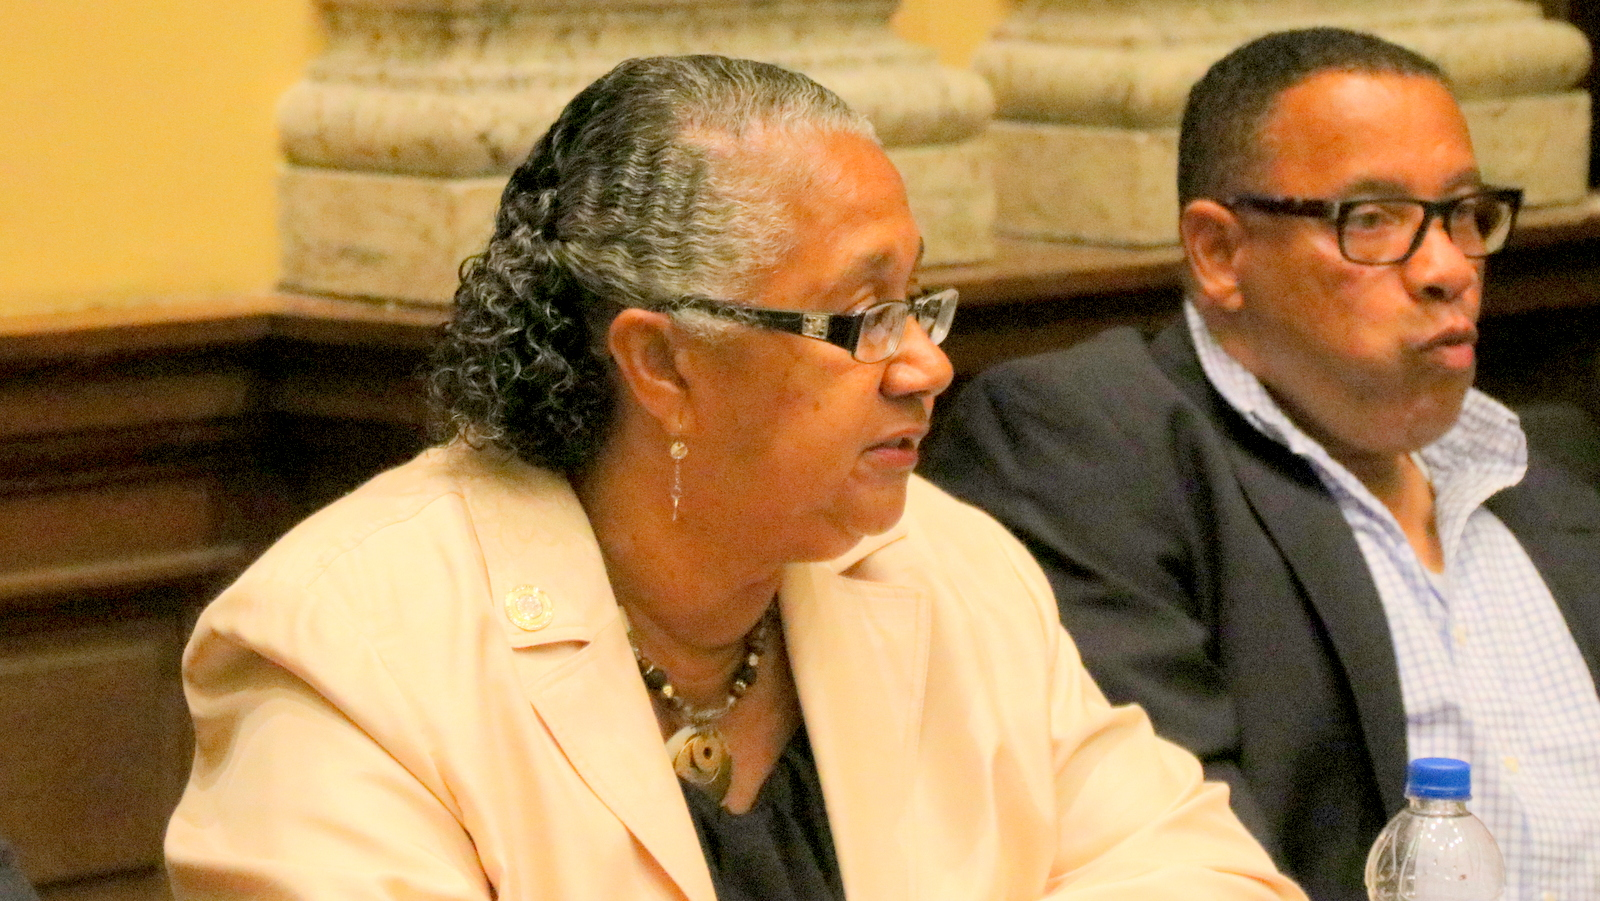 Del. Cheryl Glenn listens at the meeting where she was elected chair of the Baltimore City Delegation. (Fern Shen)